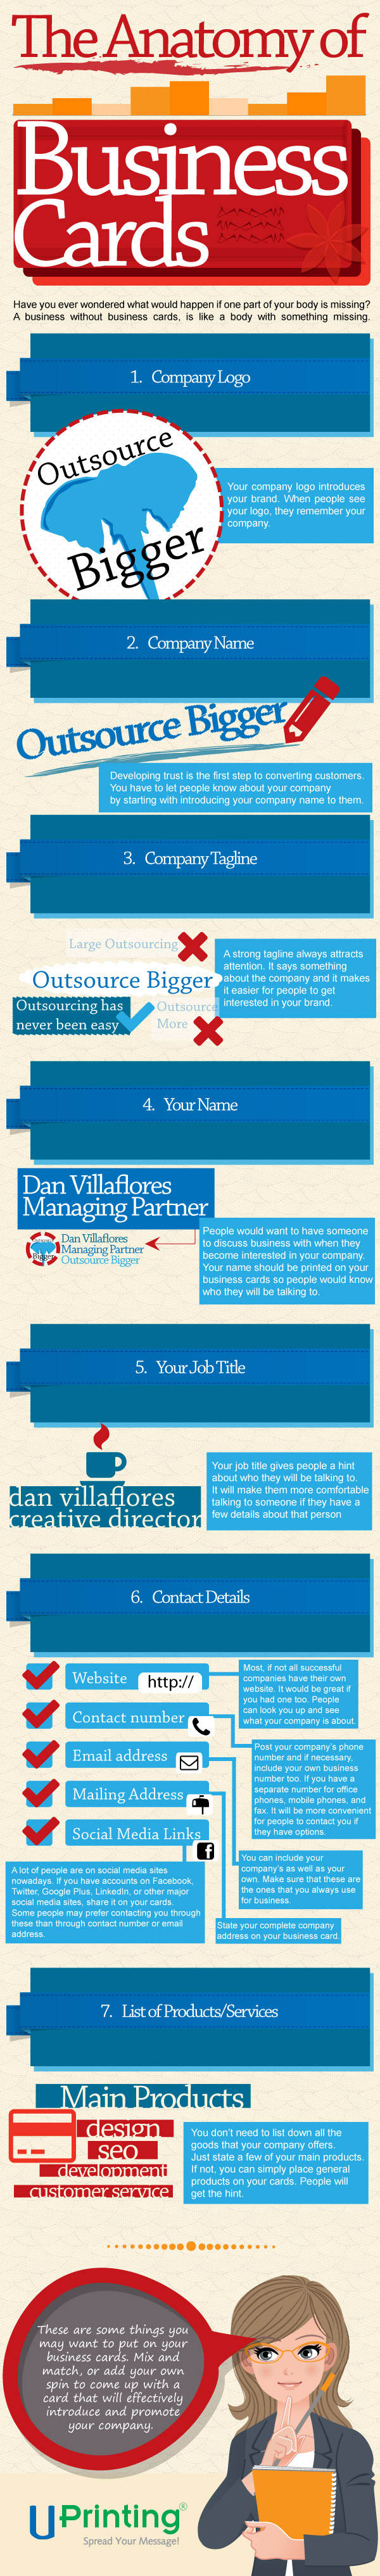 Anatomy Of Business Cards [Infographic]